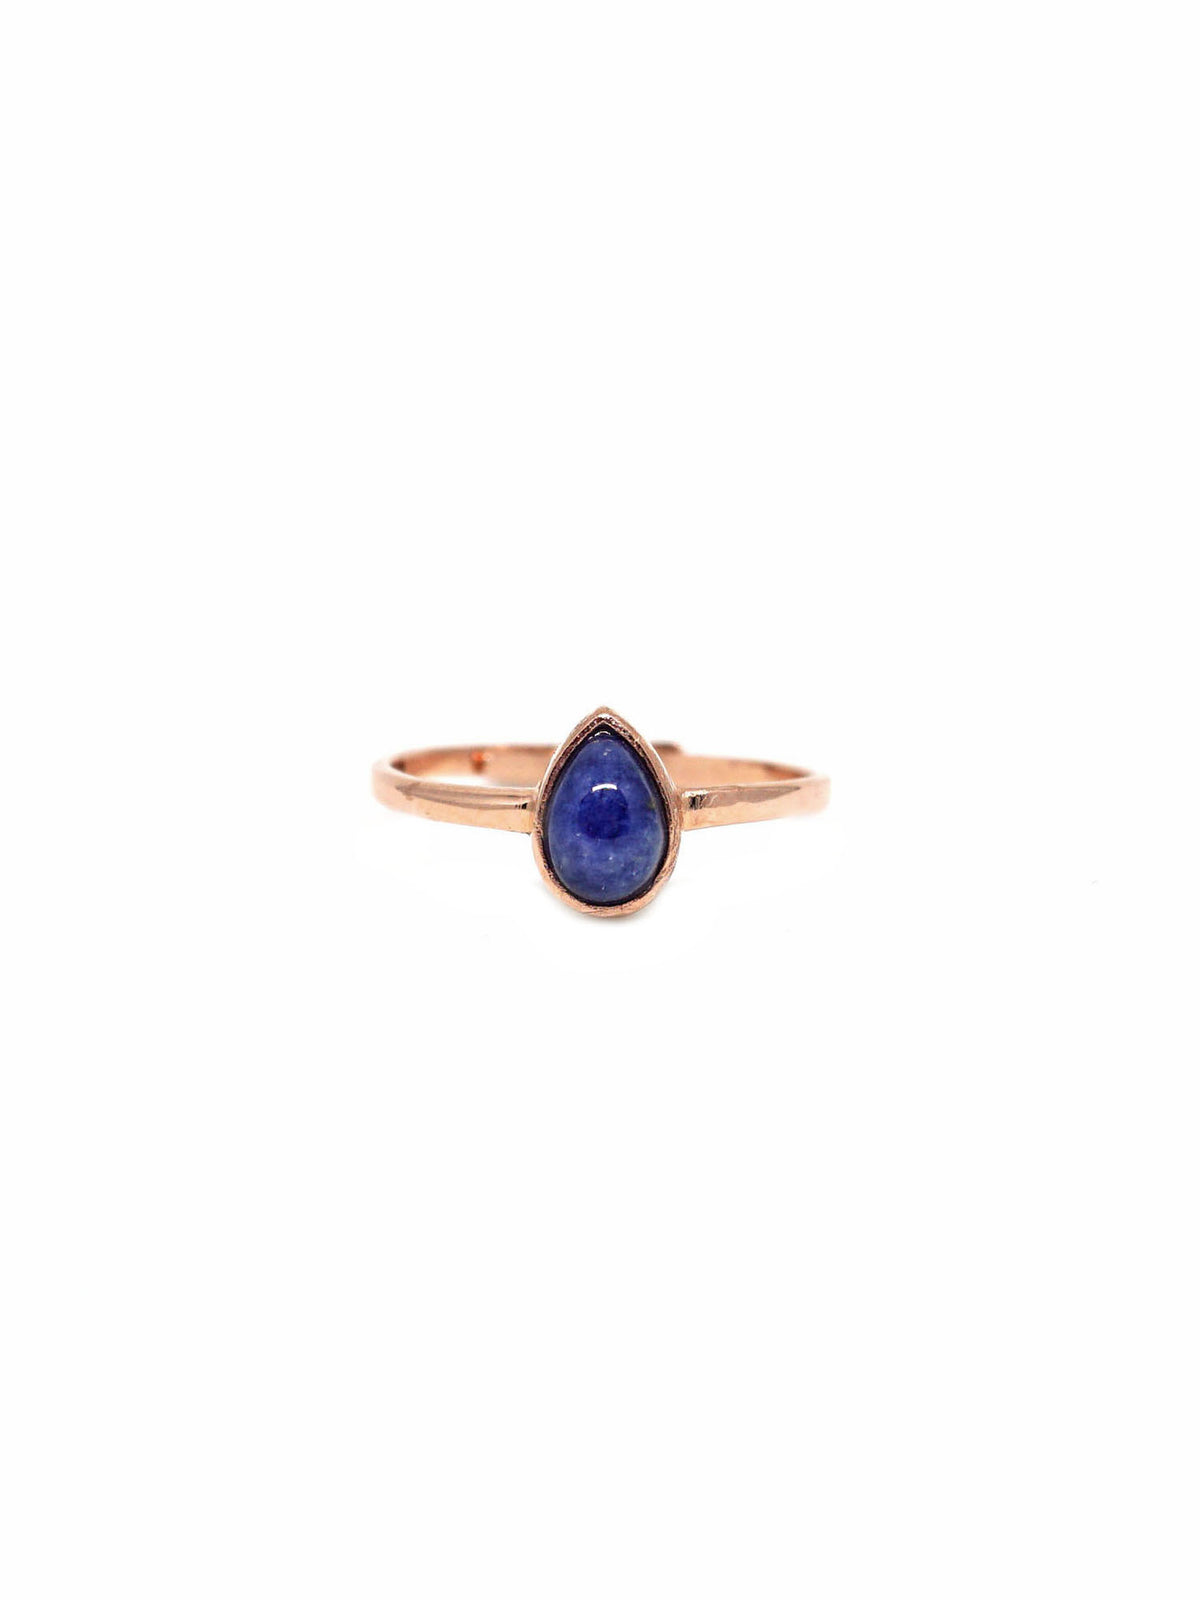 Dew Drop Ring - Rose Gold - Blue Sapphire